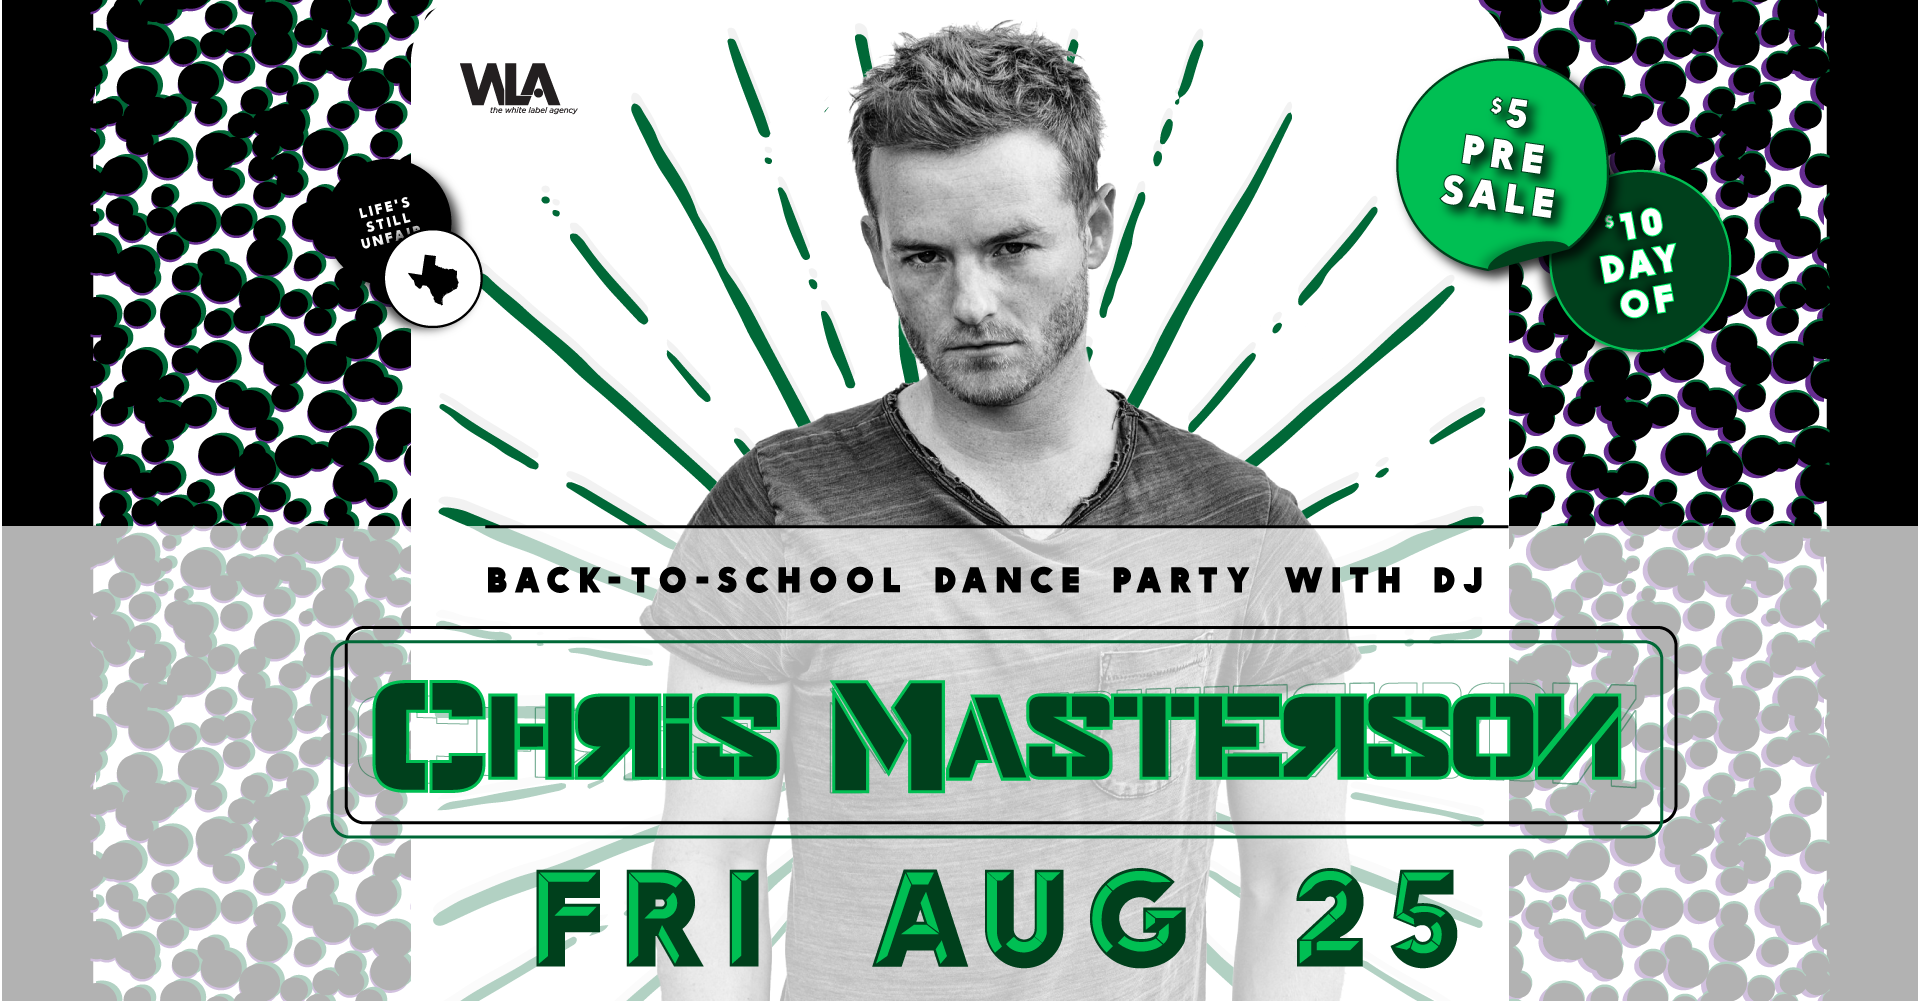 Back-to-School Dance Party w/ DJ Chris Masterson